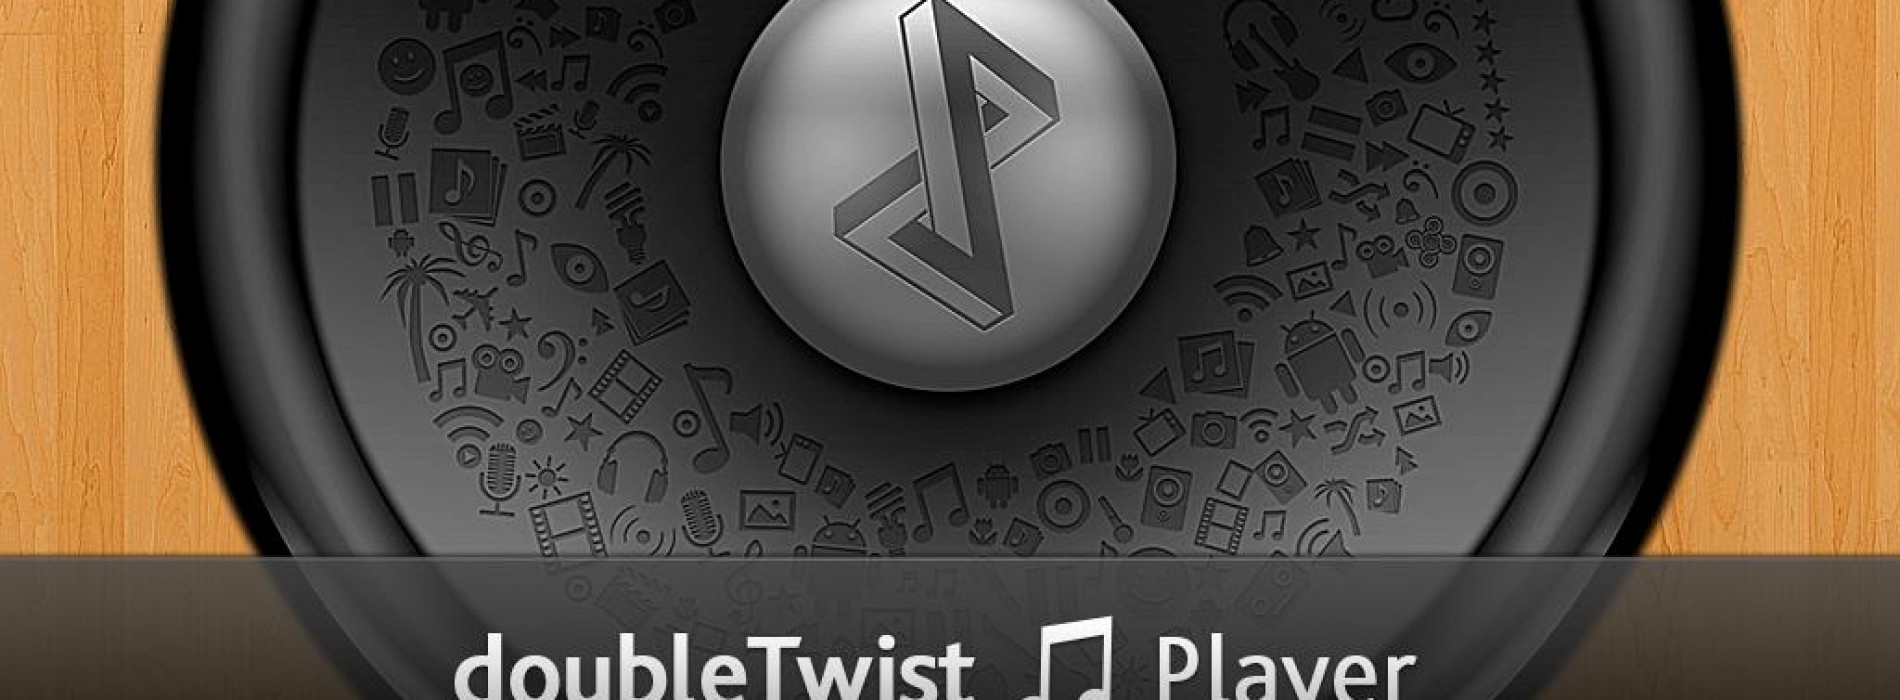 doubleTwist for Android receives a redesign, next major release coming in December